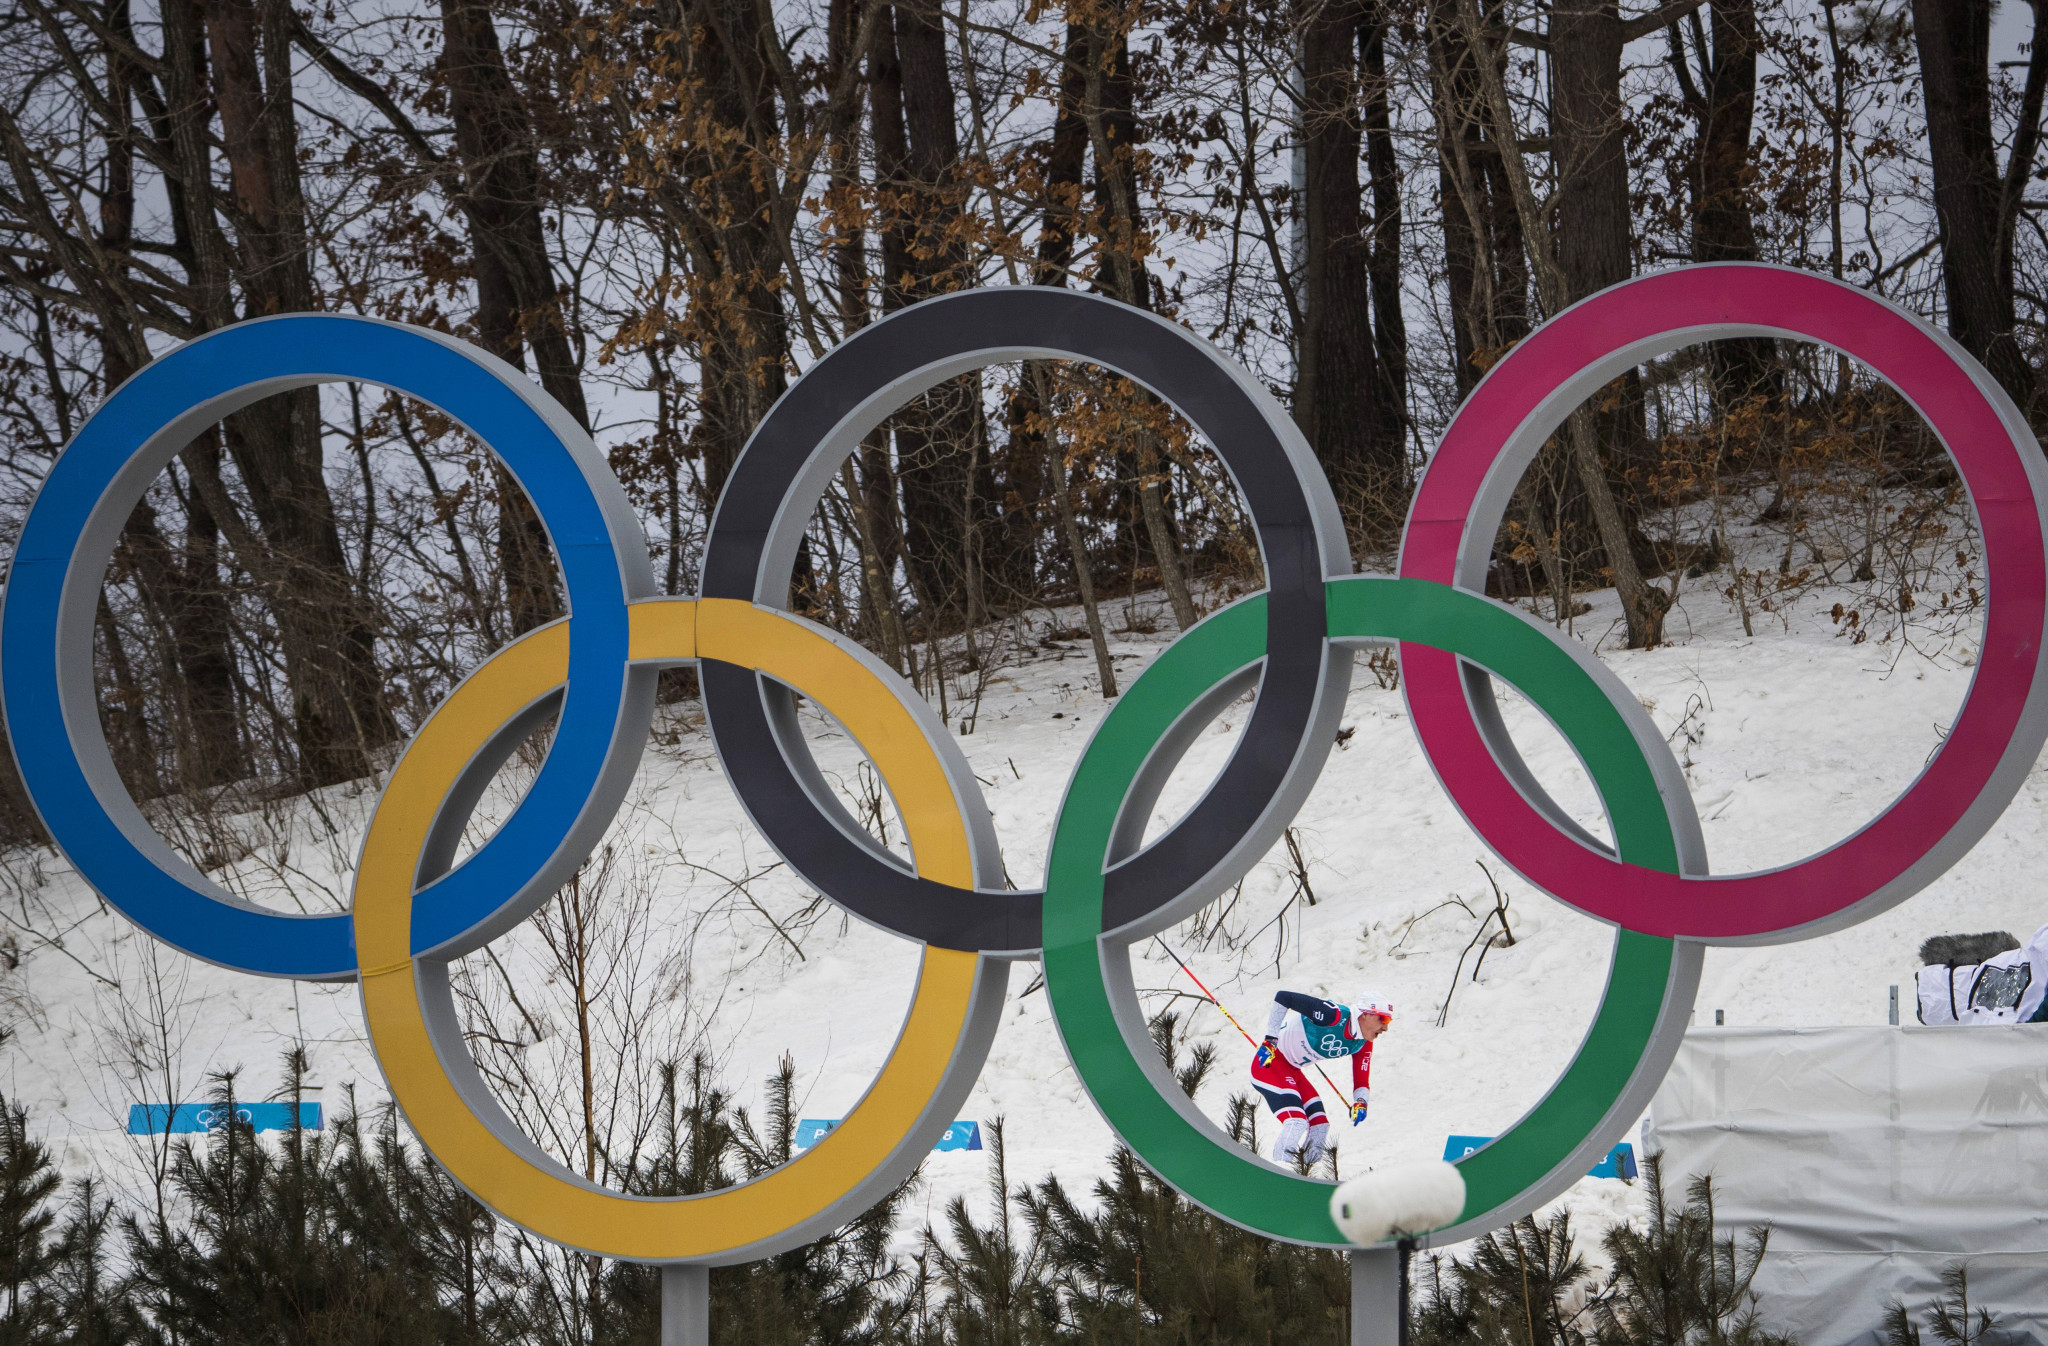 Russian Olympic Committee discuss doping issues at IOC meeting